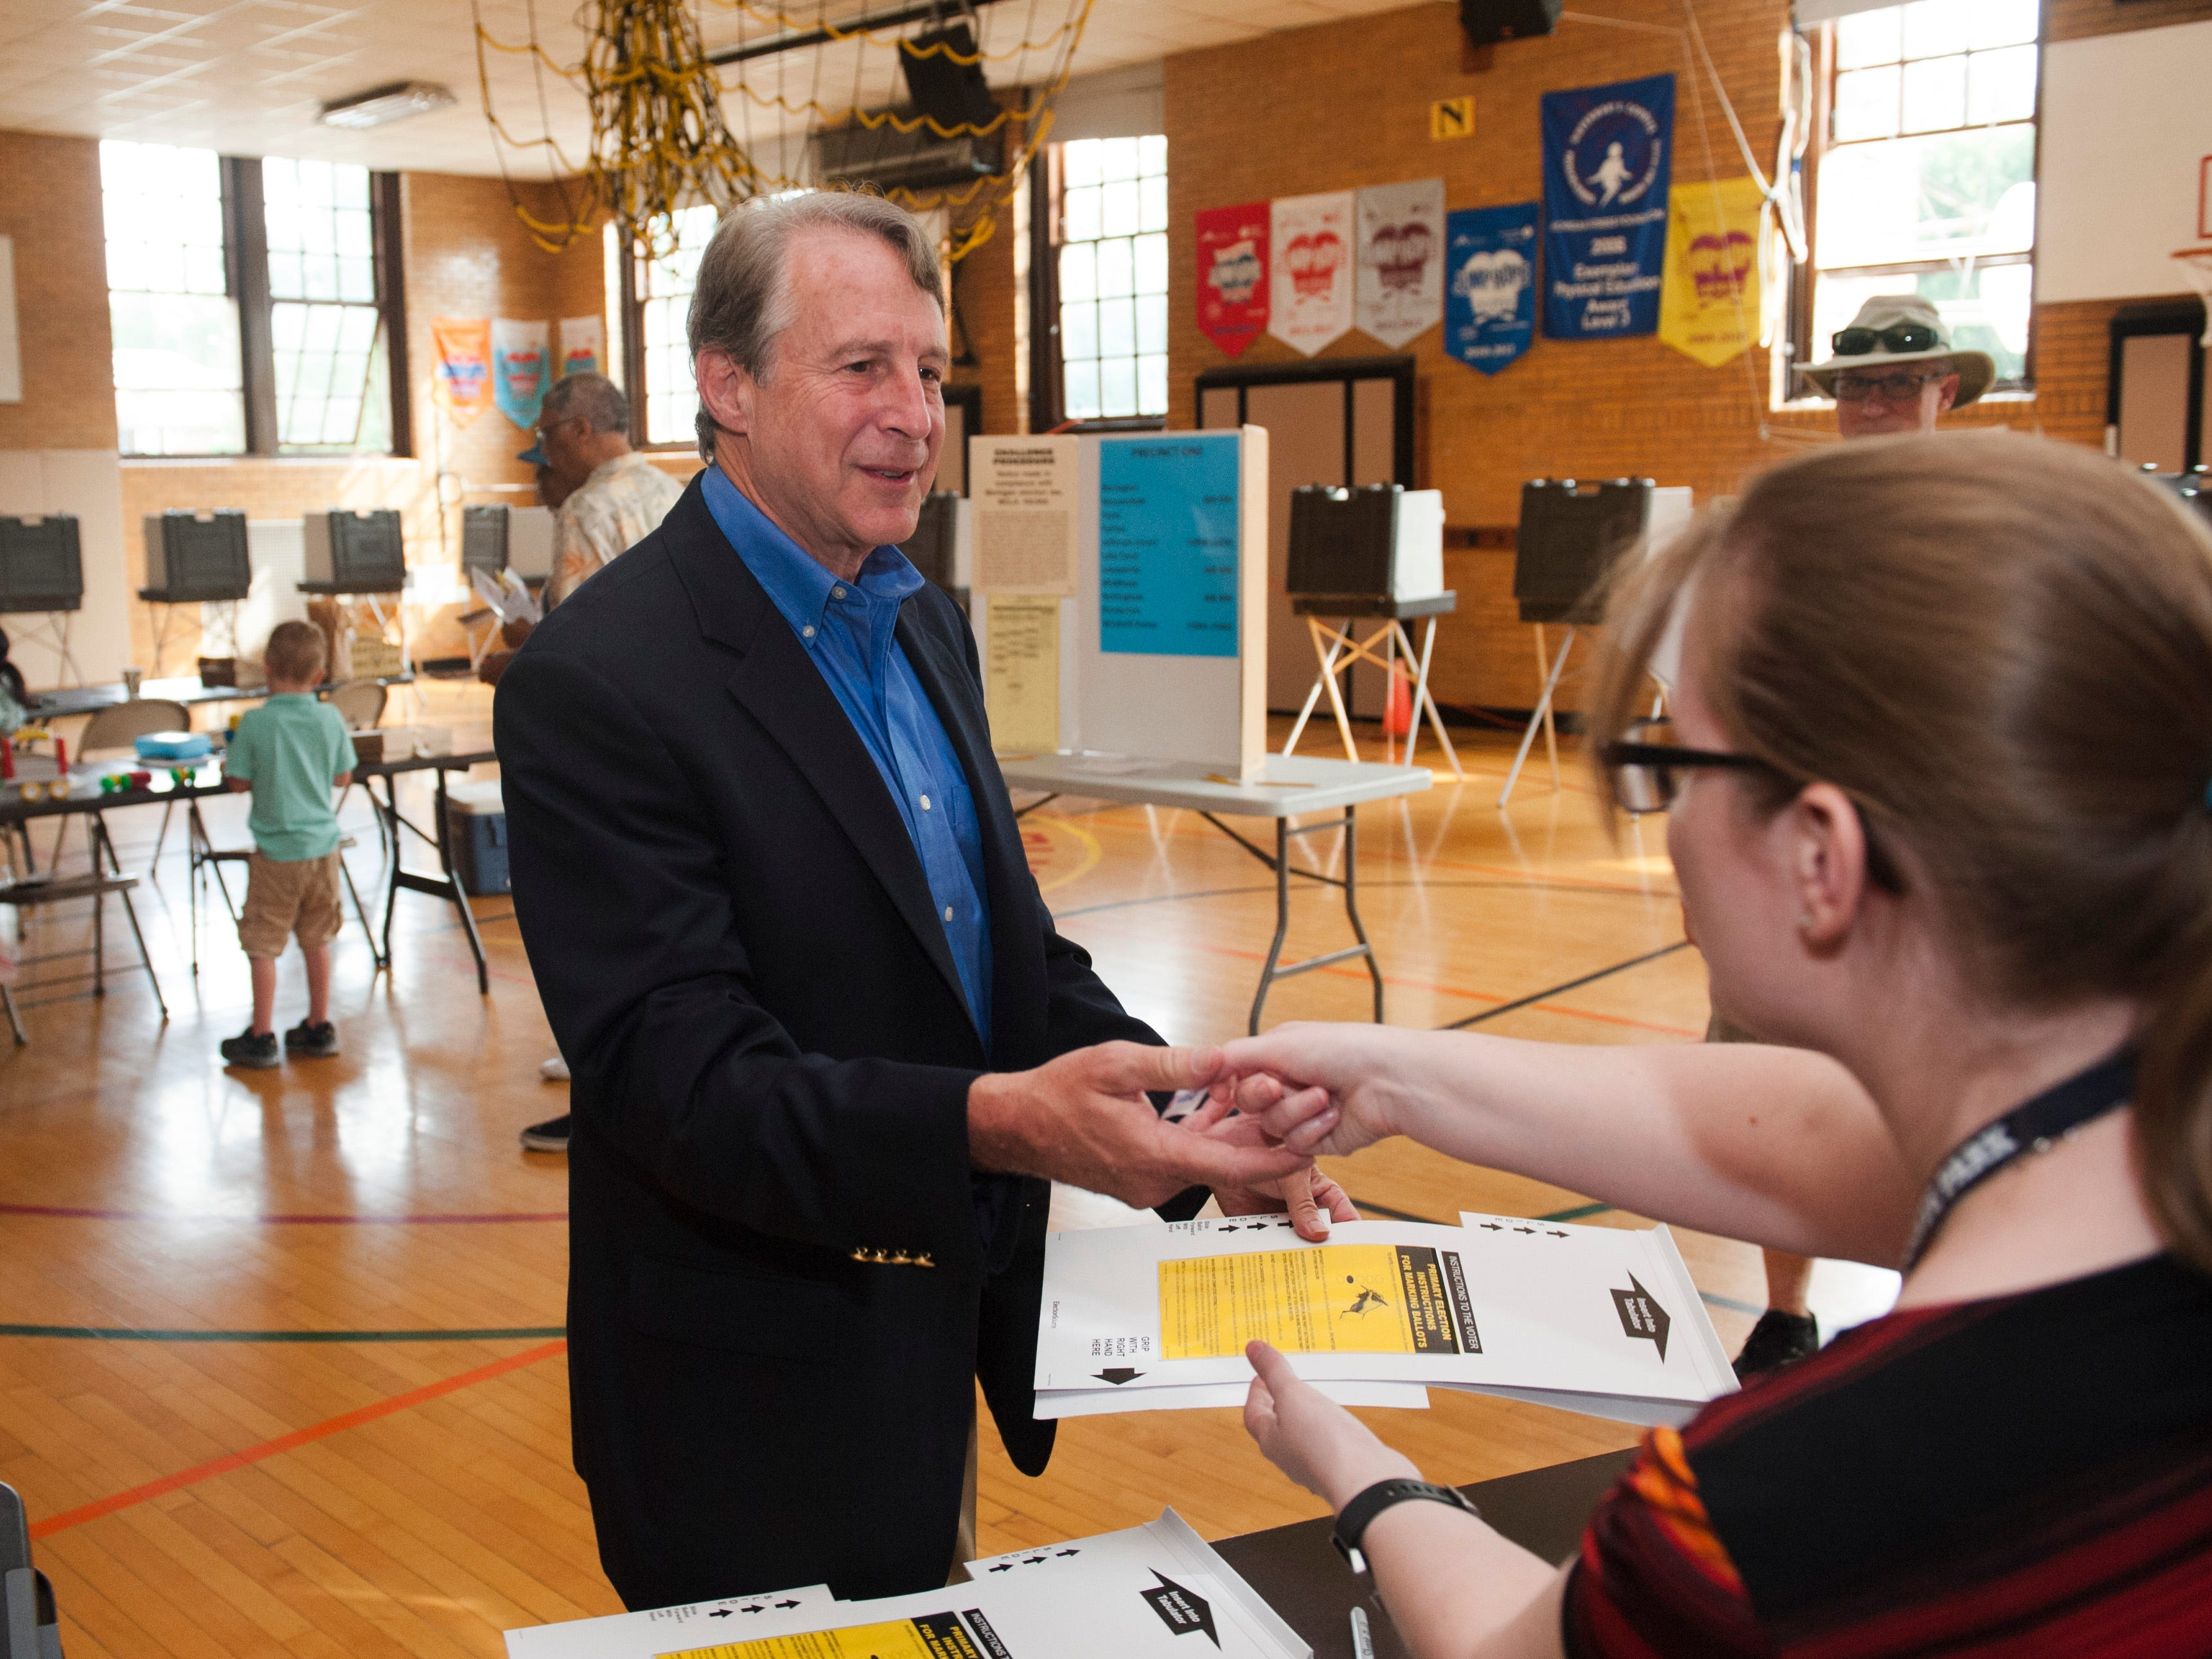 Grosse Pointe financier and candidate Sandy Pensler, who is running for the GOP U.S. Senate nomination, thanks election worker Courtney Delmege after casting his ballot in the Michigan primary election at Trombly School in Grosse Pointe Park.